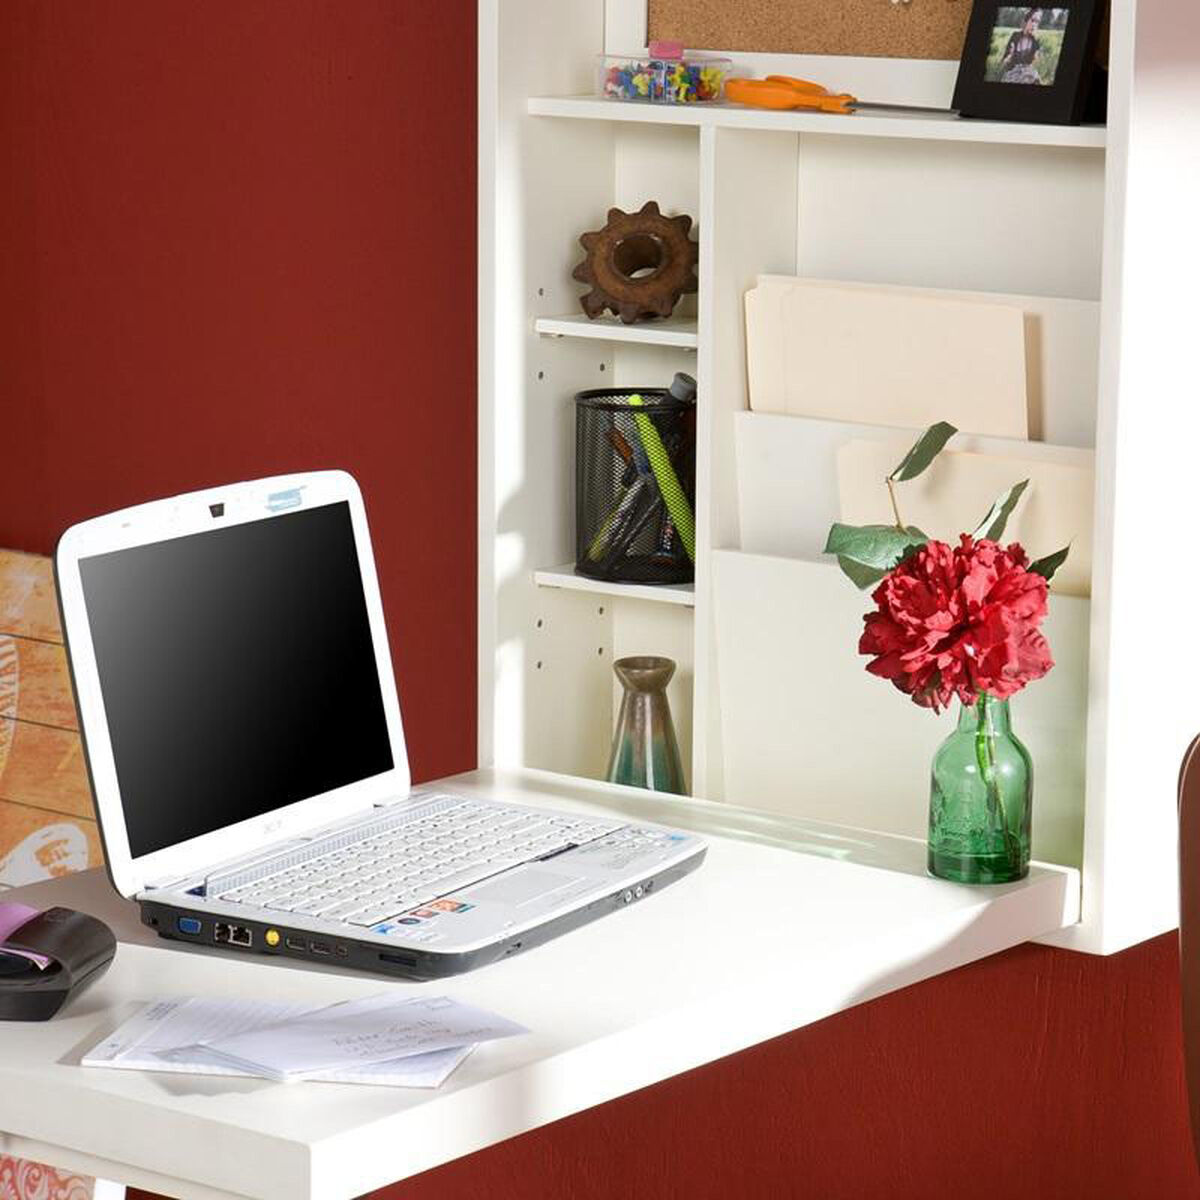 Our Stylish Space Saving Multi Function Wall Mounted Fold Out Convertible Desk With Bill Organizer And